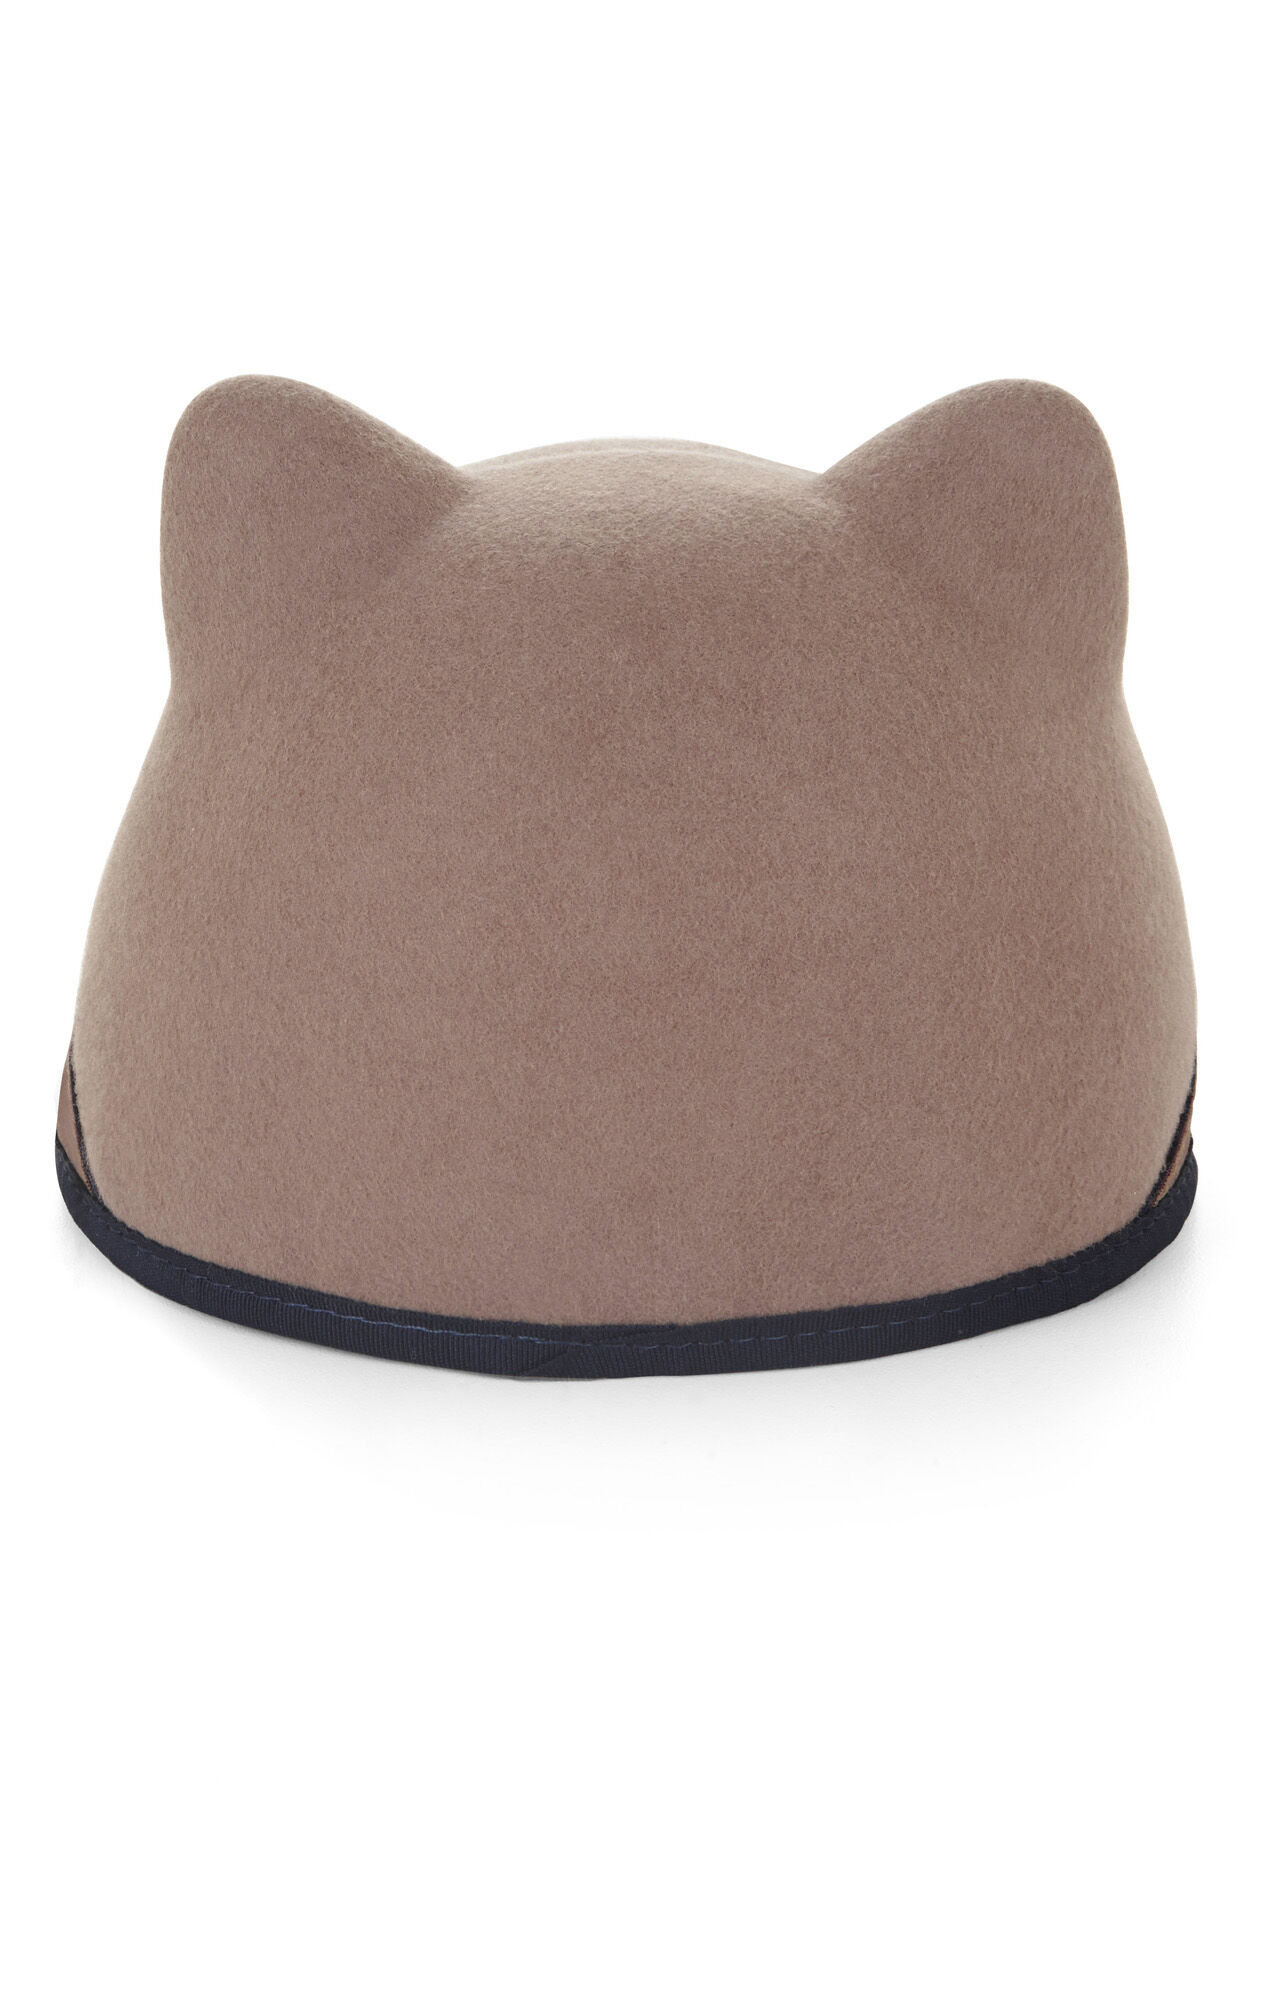 Animal Ears Cap